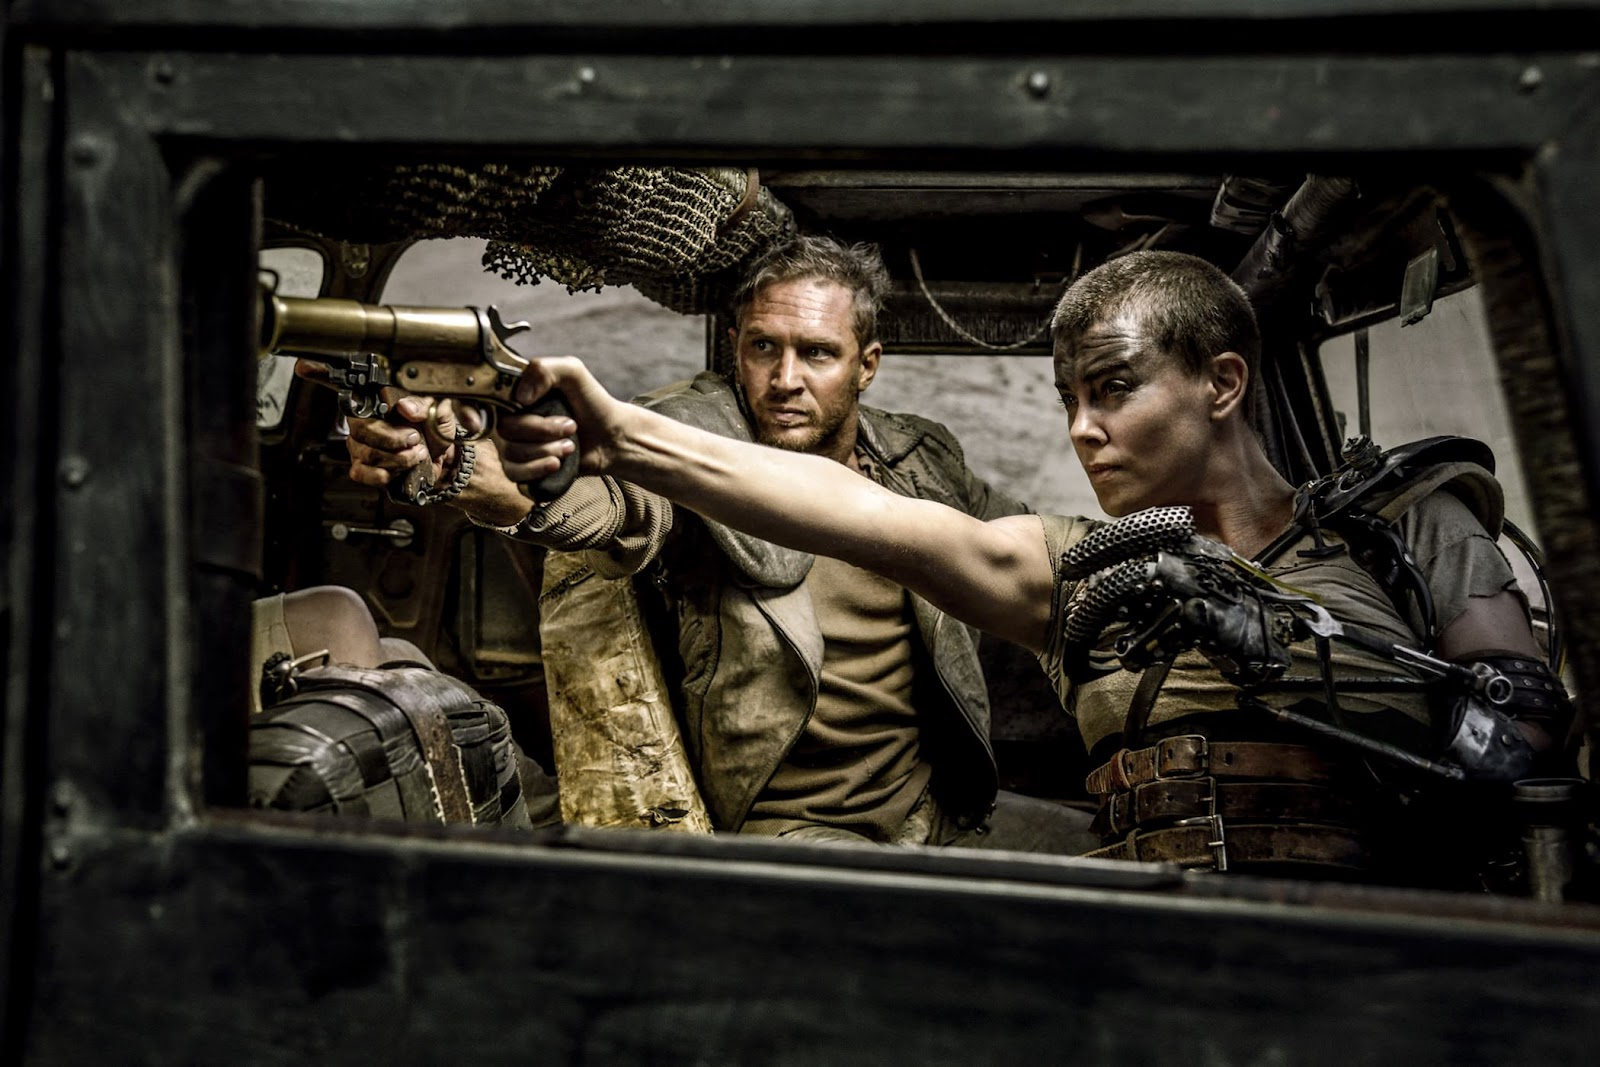 mad-max-fury-road-tom-hardy-charlize-theron.jpg